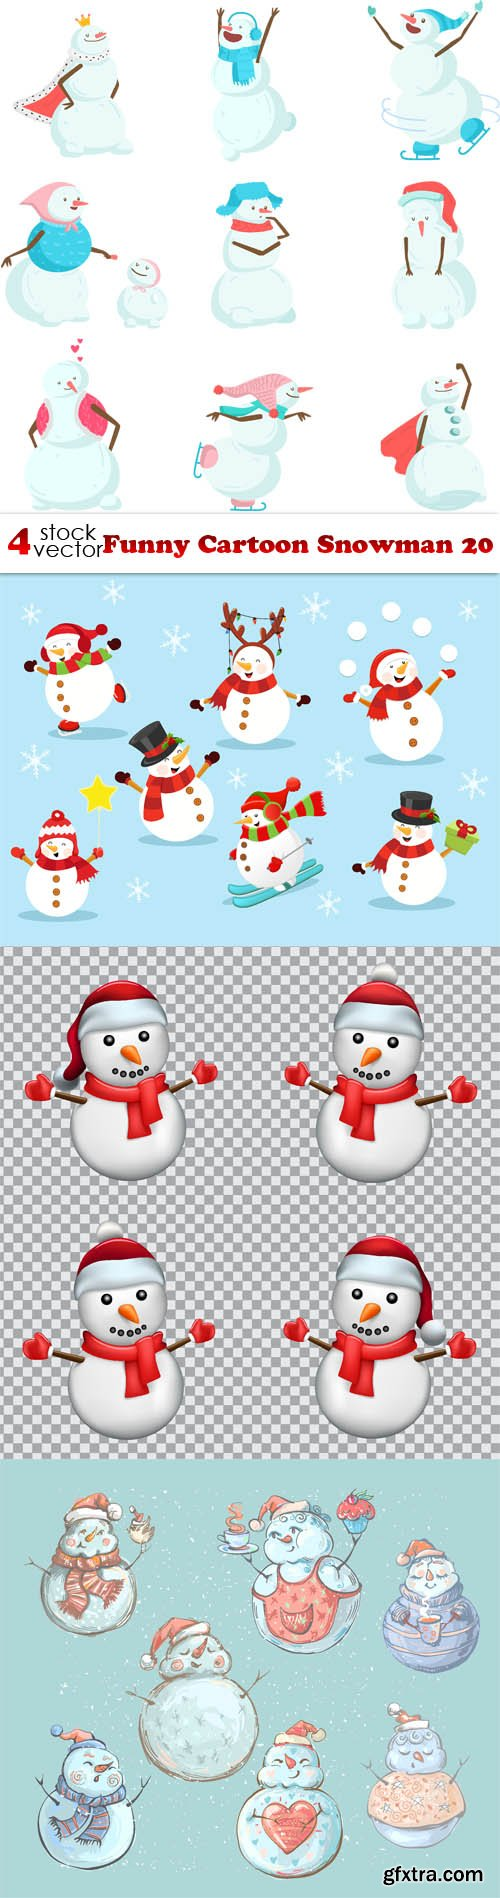 Vectors - Funny Cartoon Snowman 20